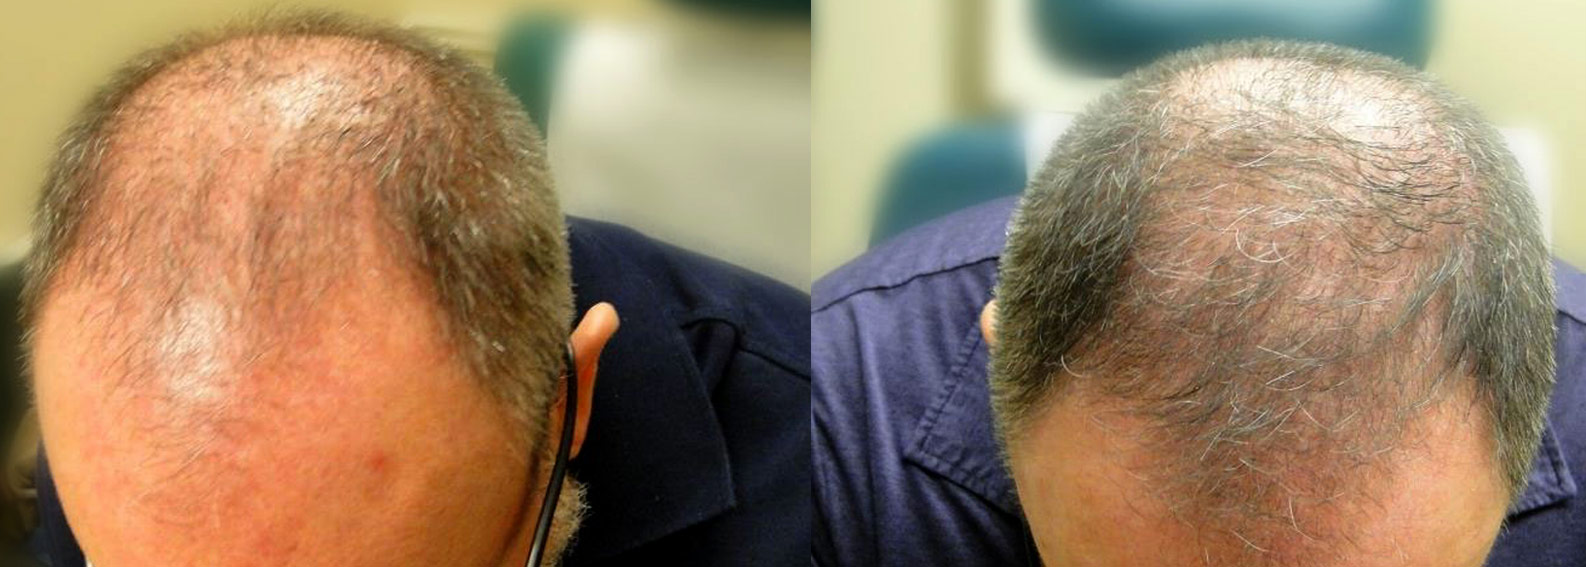 Crown hair transplant before and after photo.